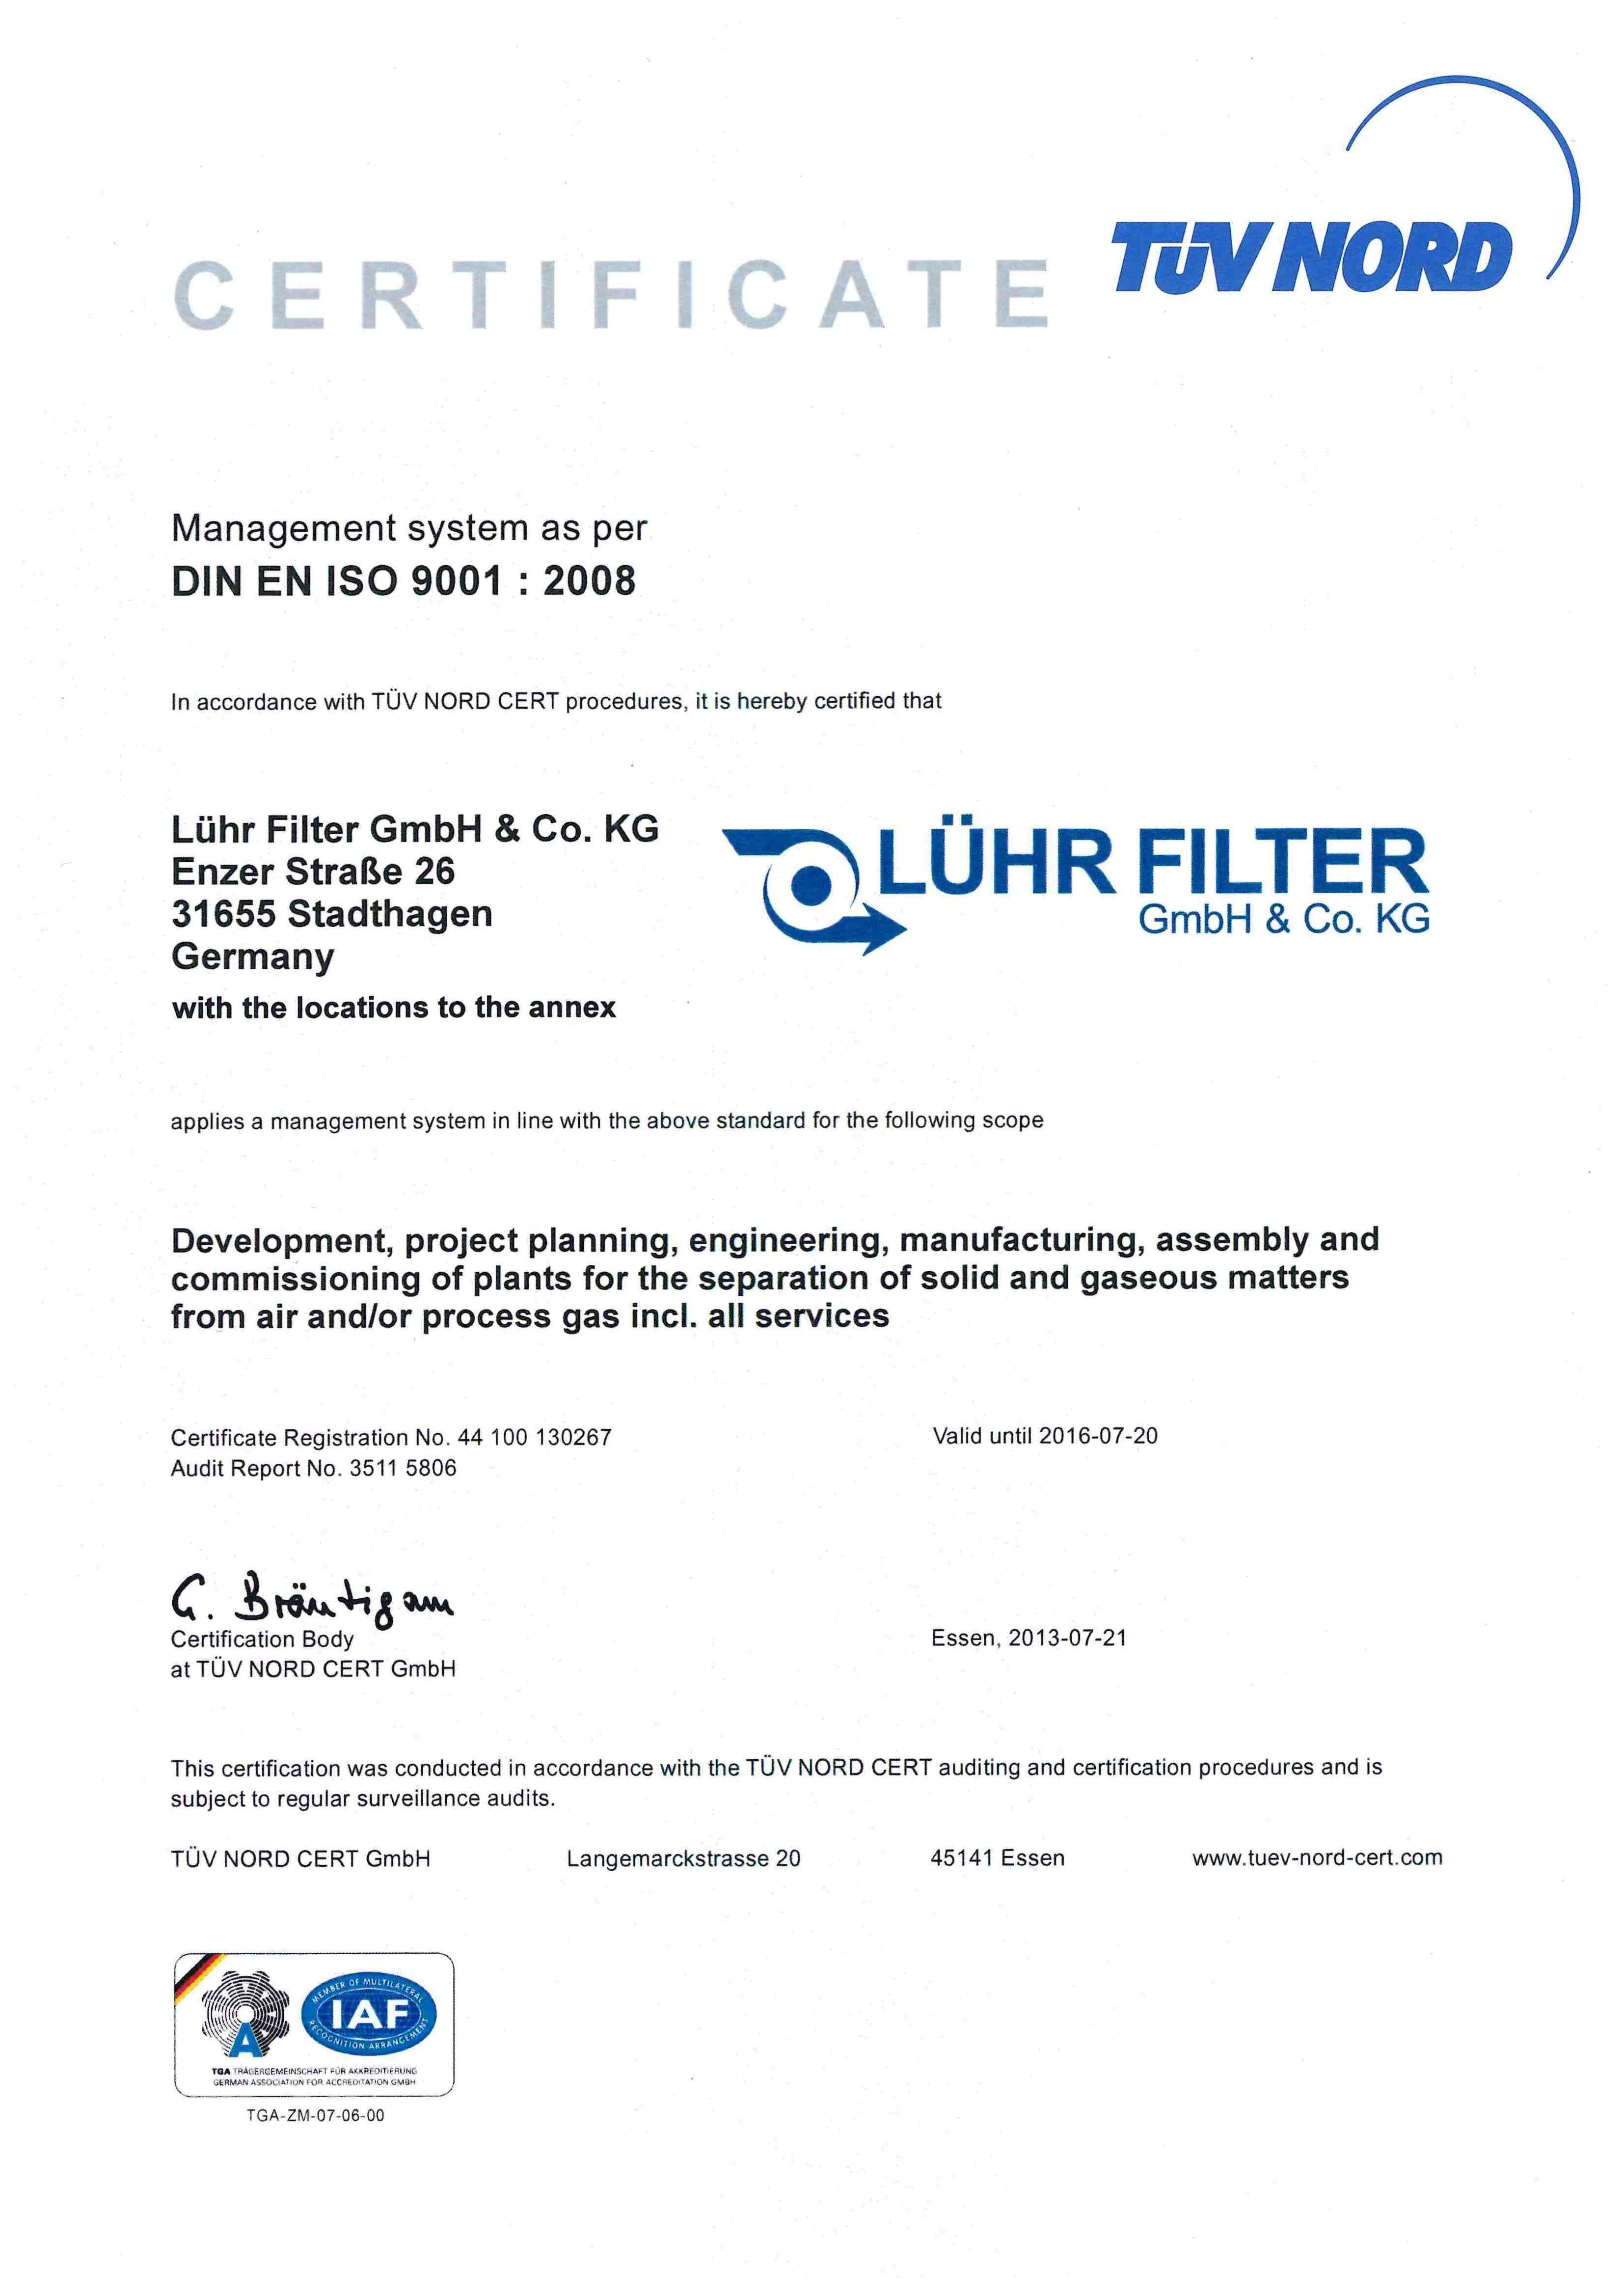 ISO 9001 Certification | Luhrfilter Ltd